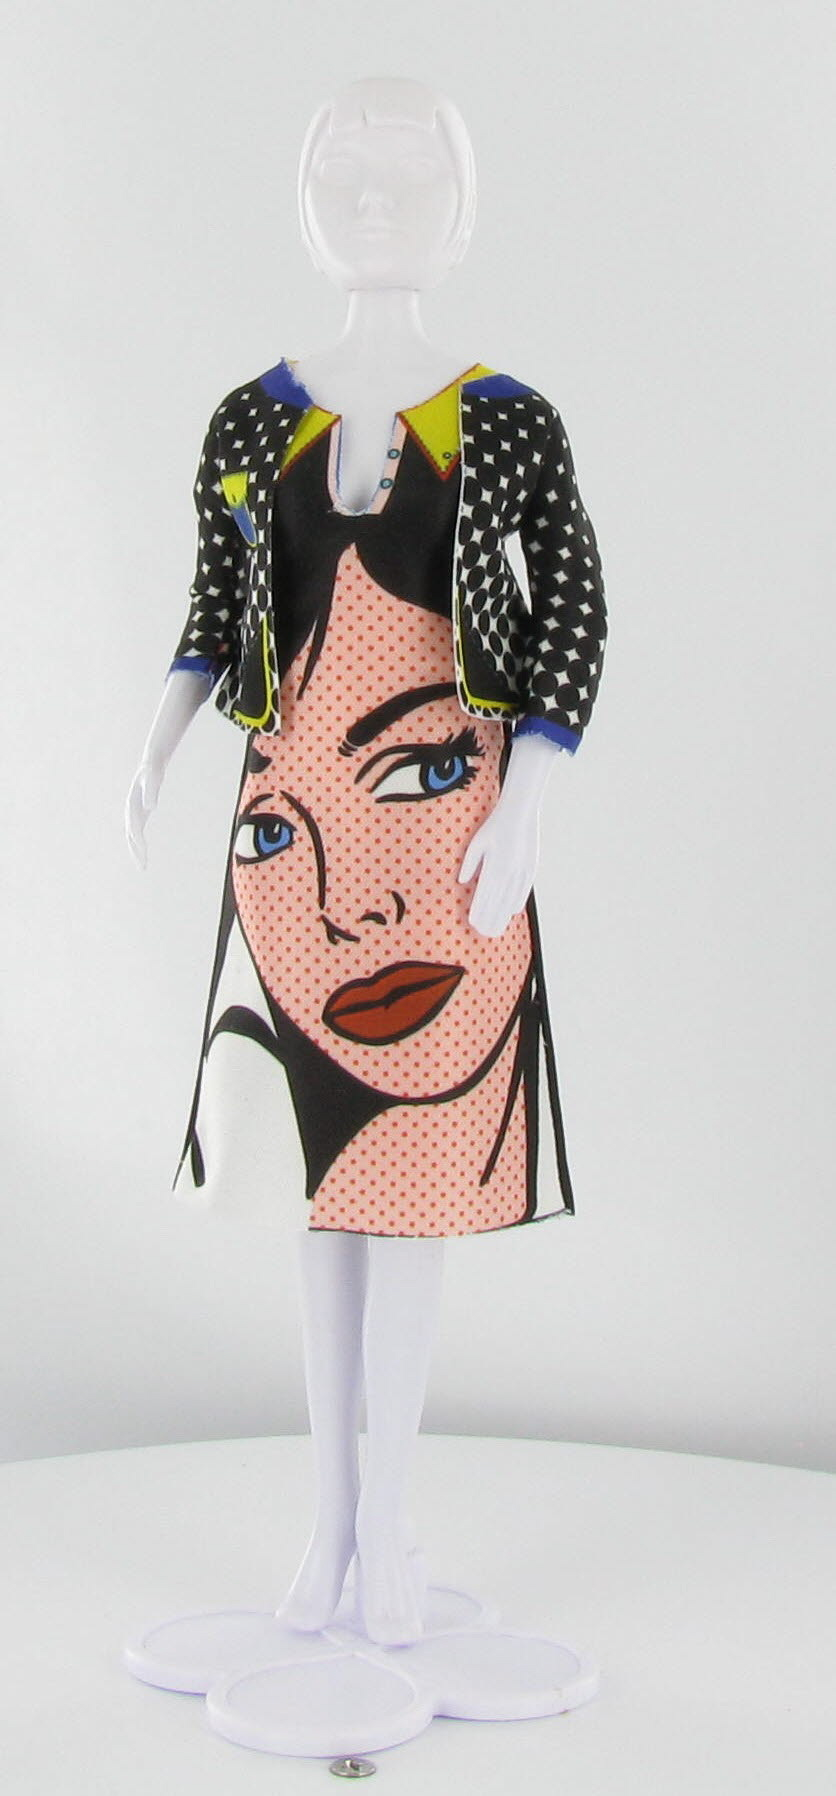 Dress Your Doll - Lizzy Pop Art